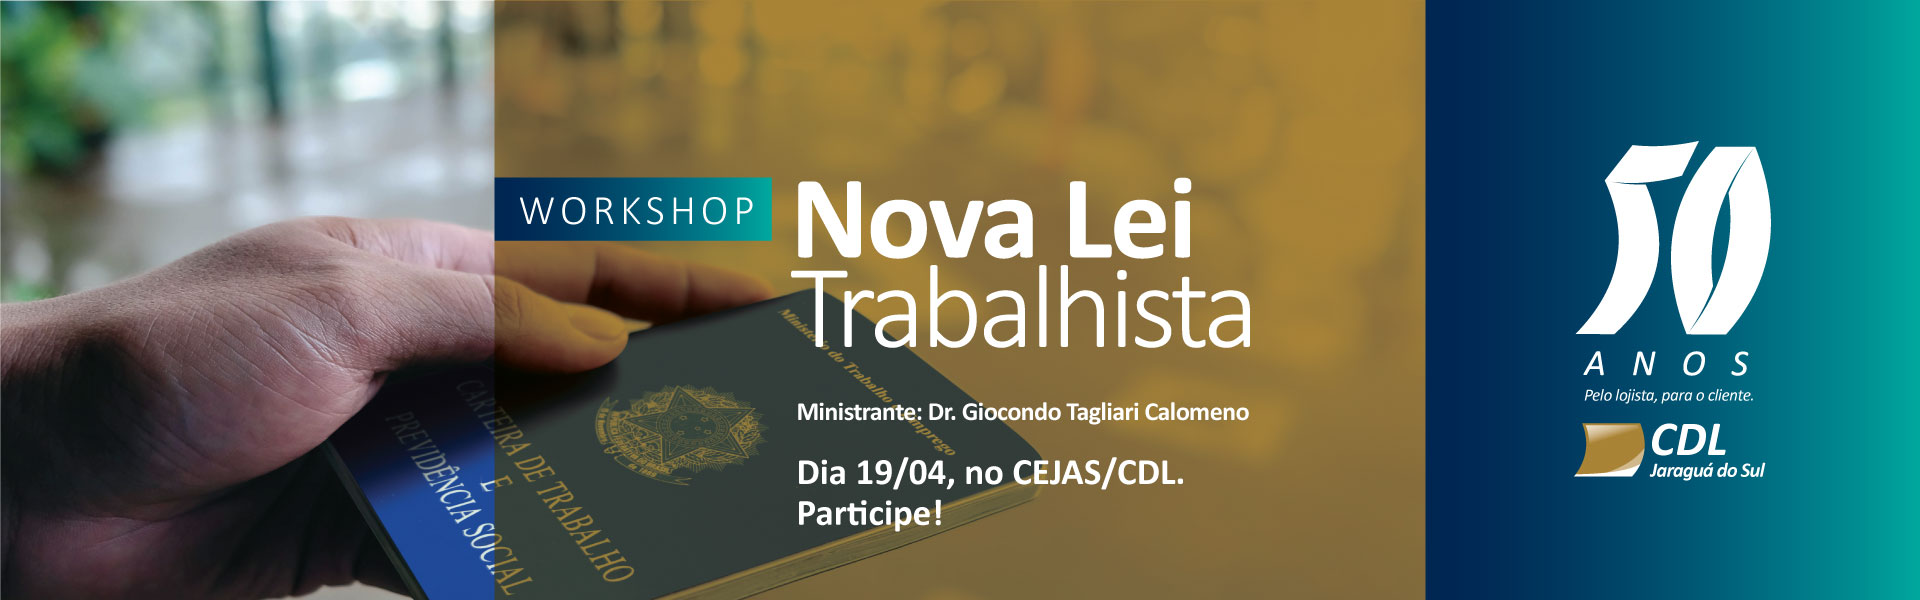 Workshop Nova Lei Trabalhista